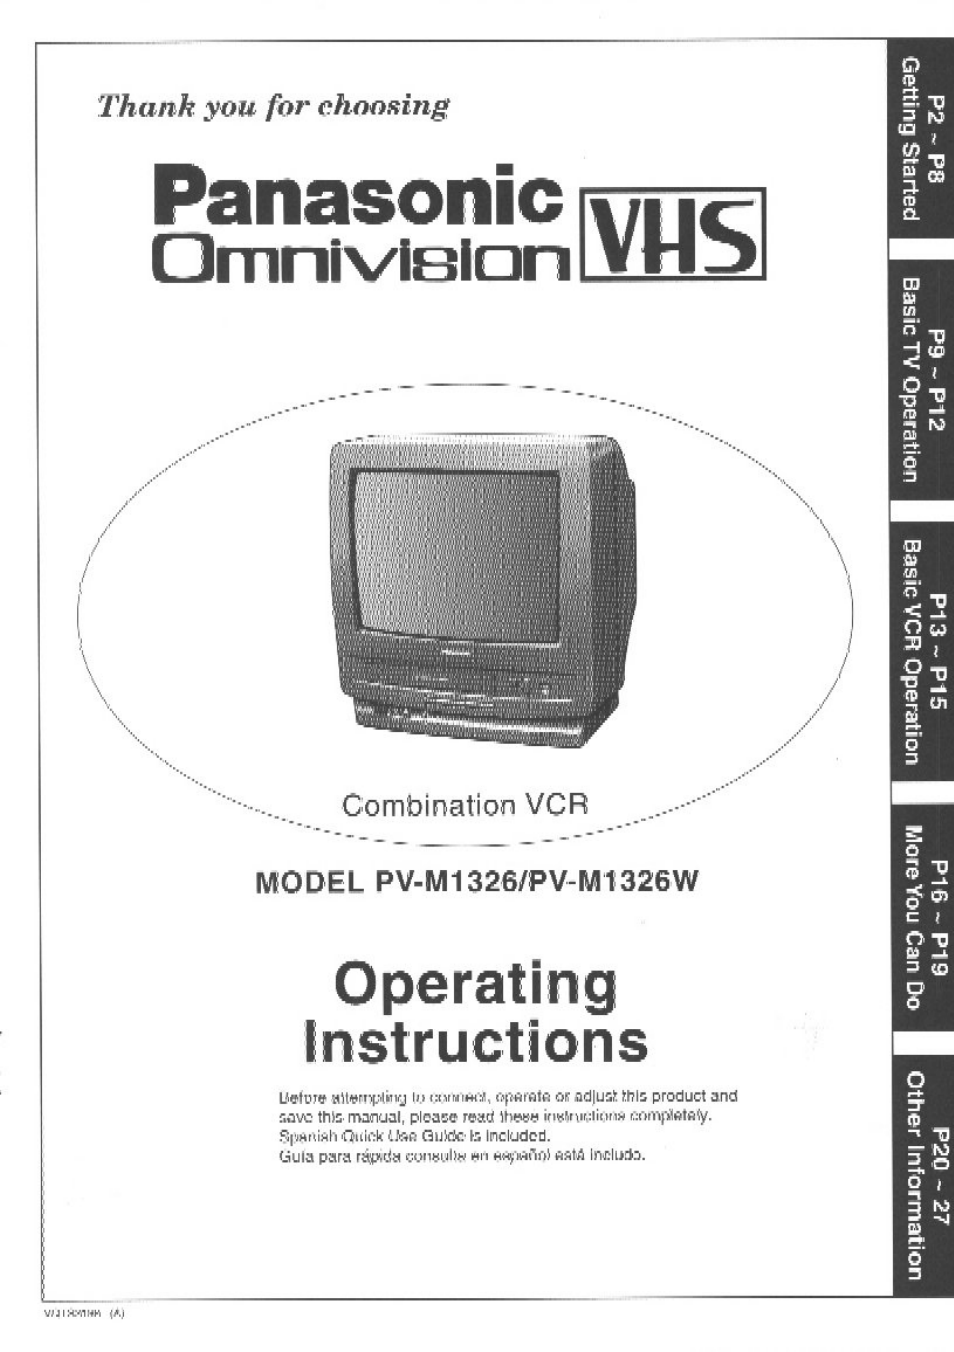 panasonic vcr pv m1326 user manual 28 pages also for vcr pv m1326w rh manualsdir com panasonic vcr dvd combo manual panasonic vcr service manual